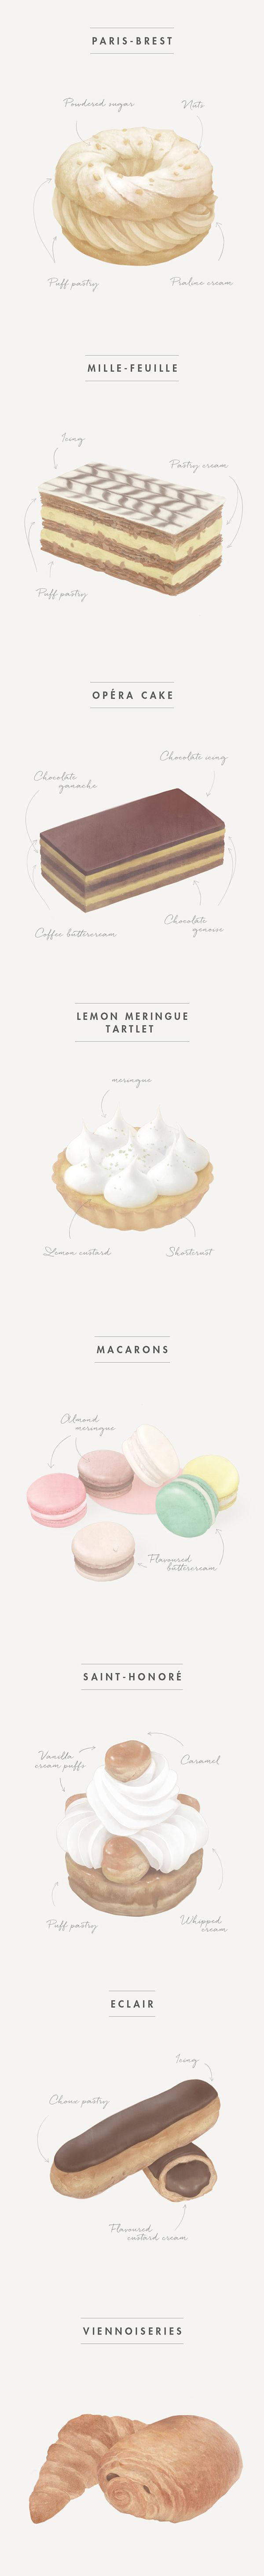 Paris Pastry Shops by HSIAO-RON CHENG, via Behance Lizzie, i'm gonna feint